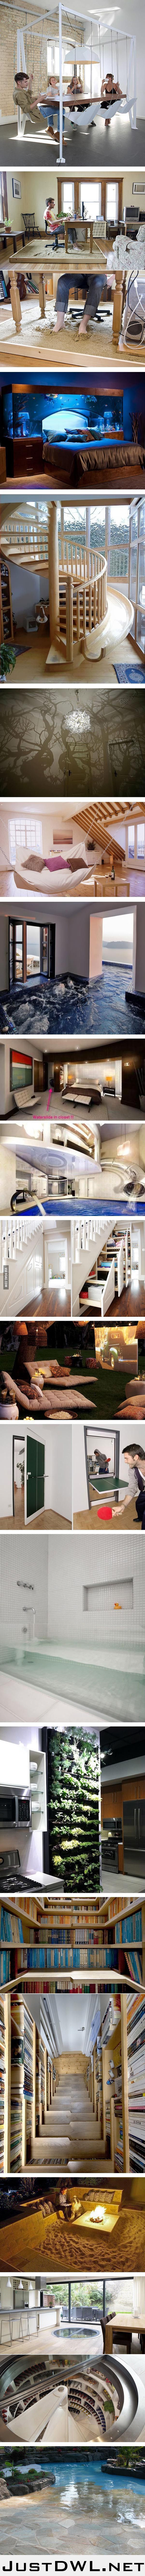 I LOVE ALL OF THESE BUT THE STAIR SLIDE AND AQUARIUM BED CANOPY ARE THE BEST